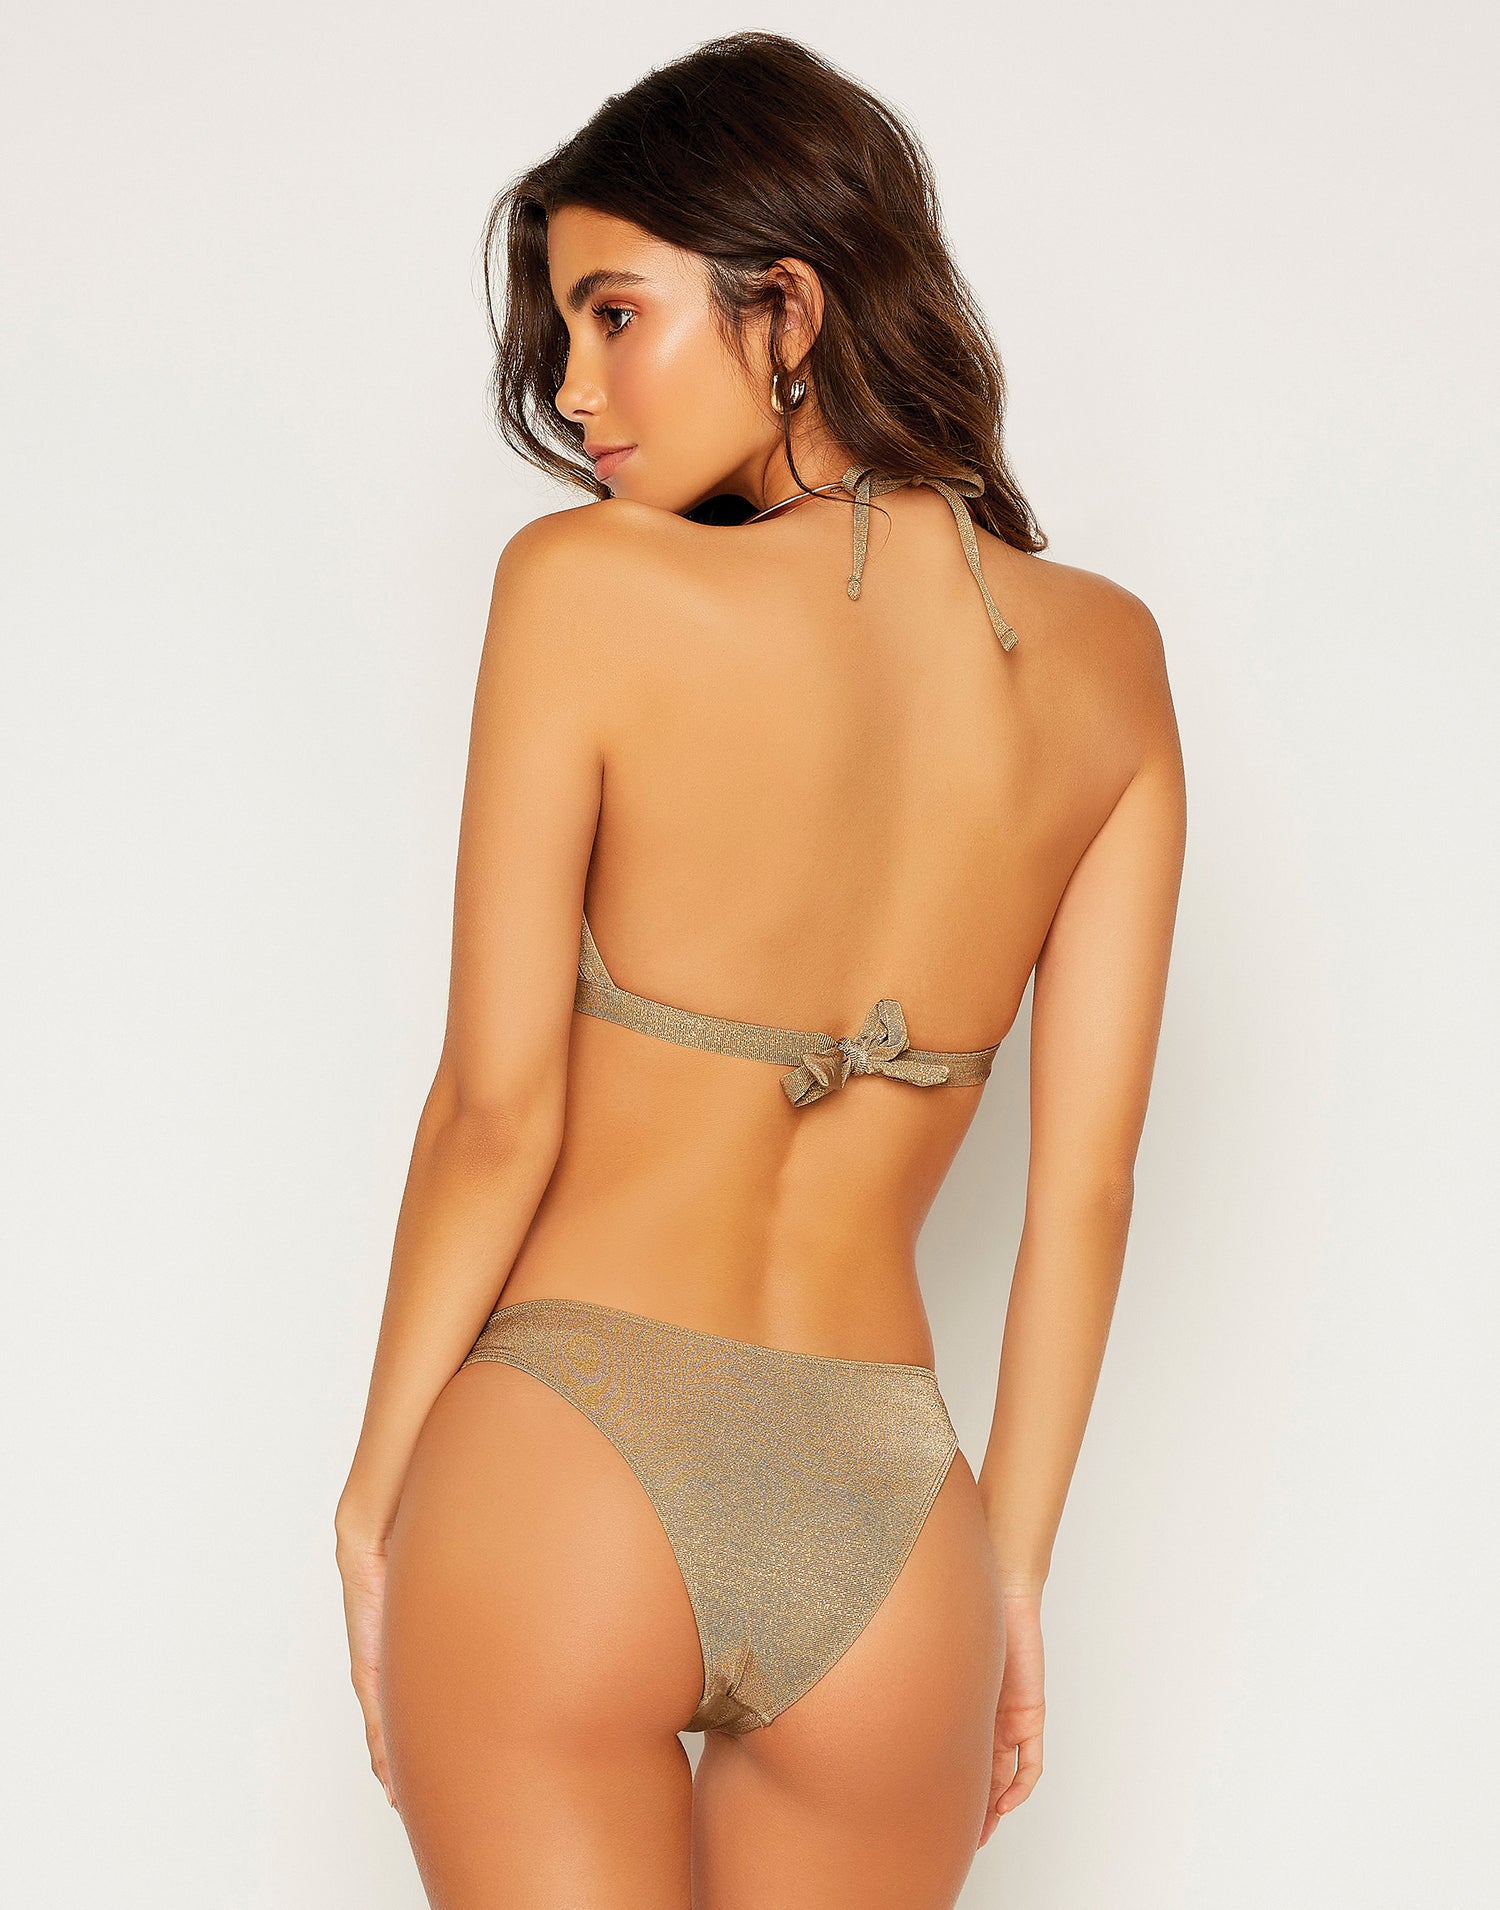 Madison High Apex Bikini Top in Tortuga with Gold Hardware - Back View